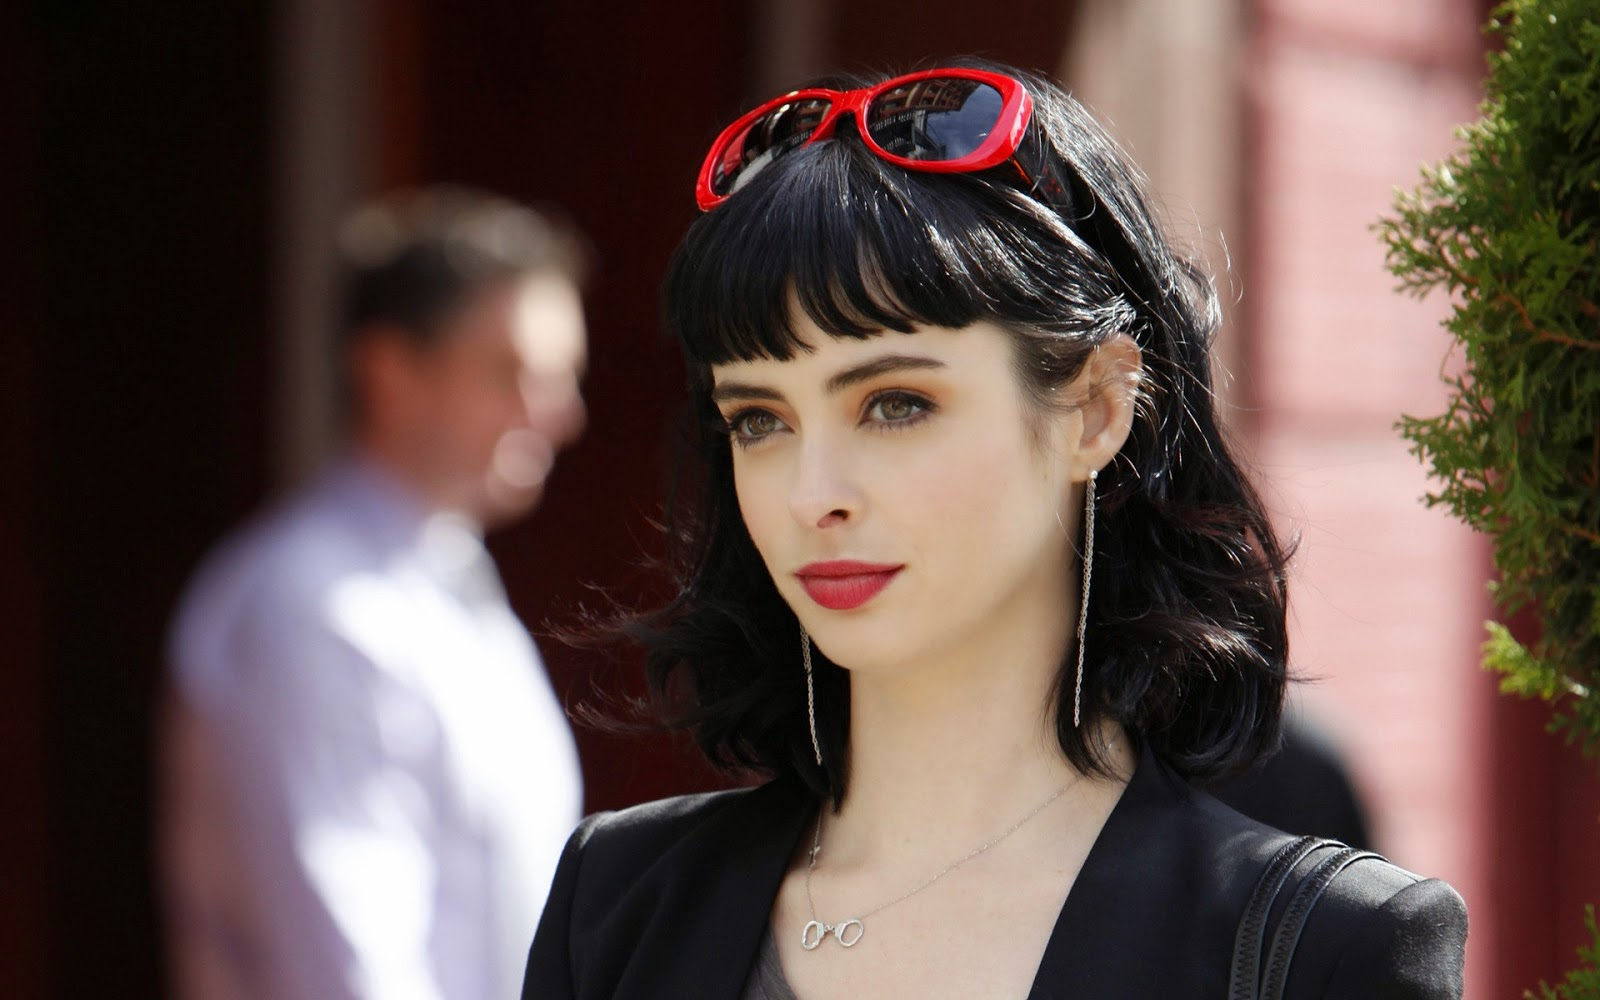 Fappening Krysten Ritter nudes (66 photos), Pussy, Is a cute, Boobs, in bikini 2017